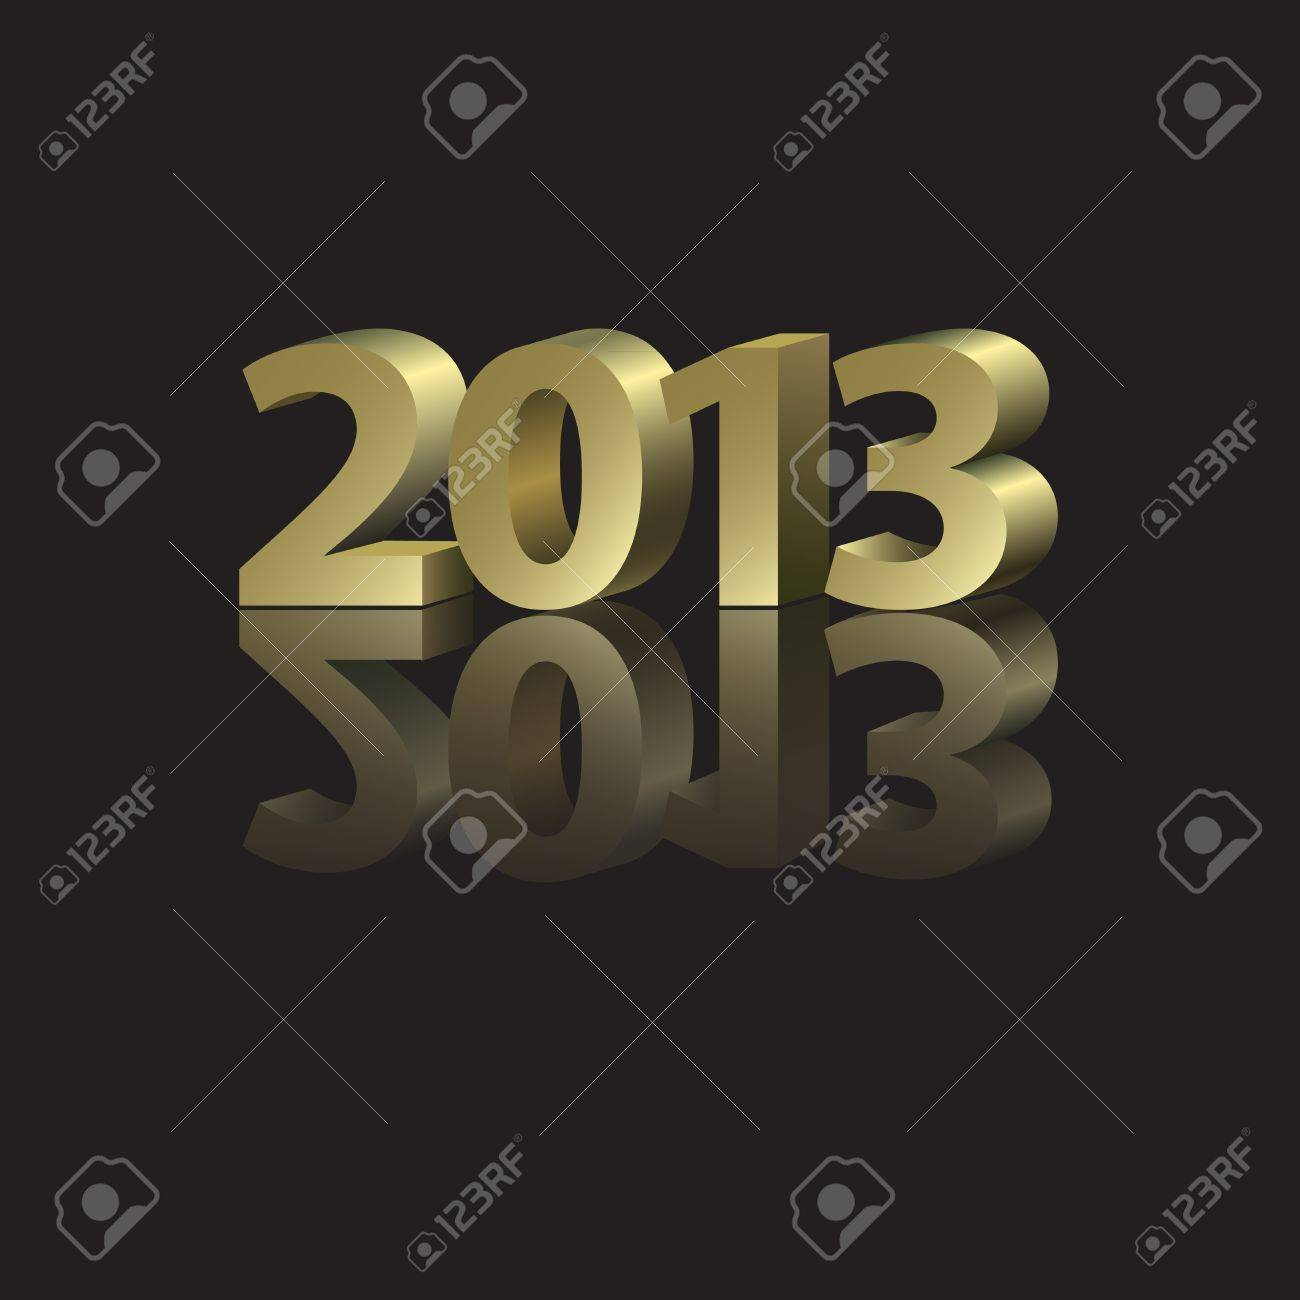 2013 New Year Card with golden elements in abstract style Stock Vector - 14620444